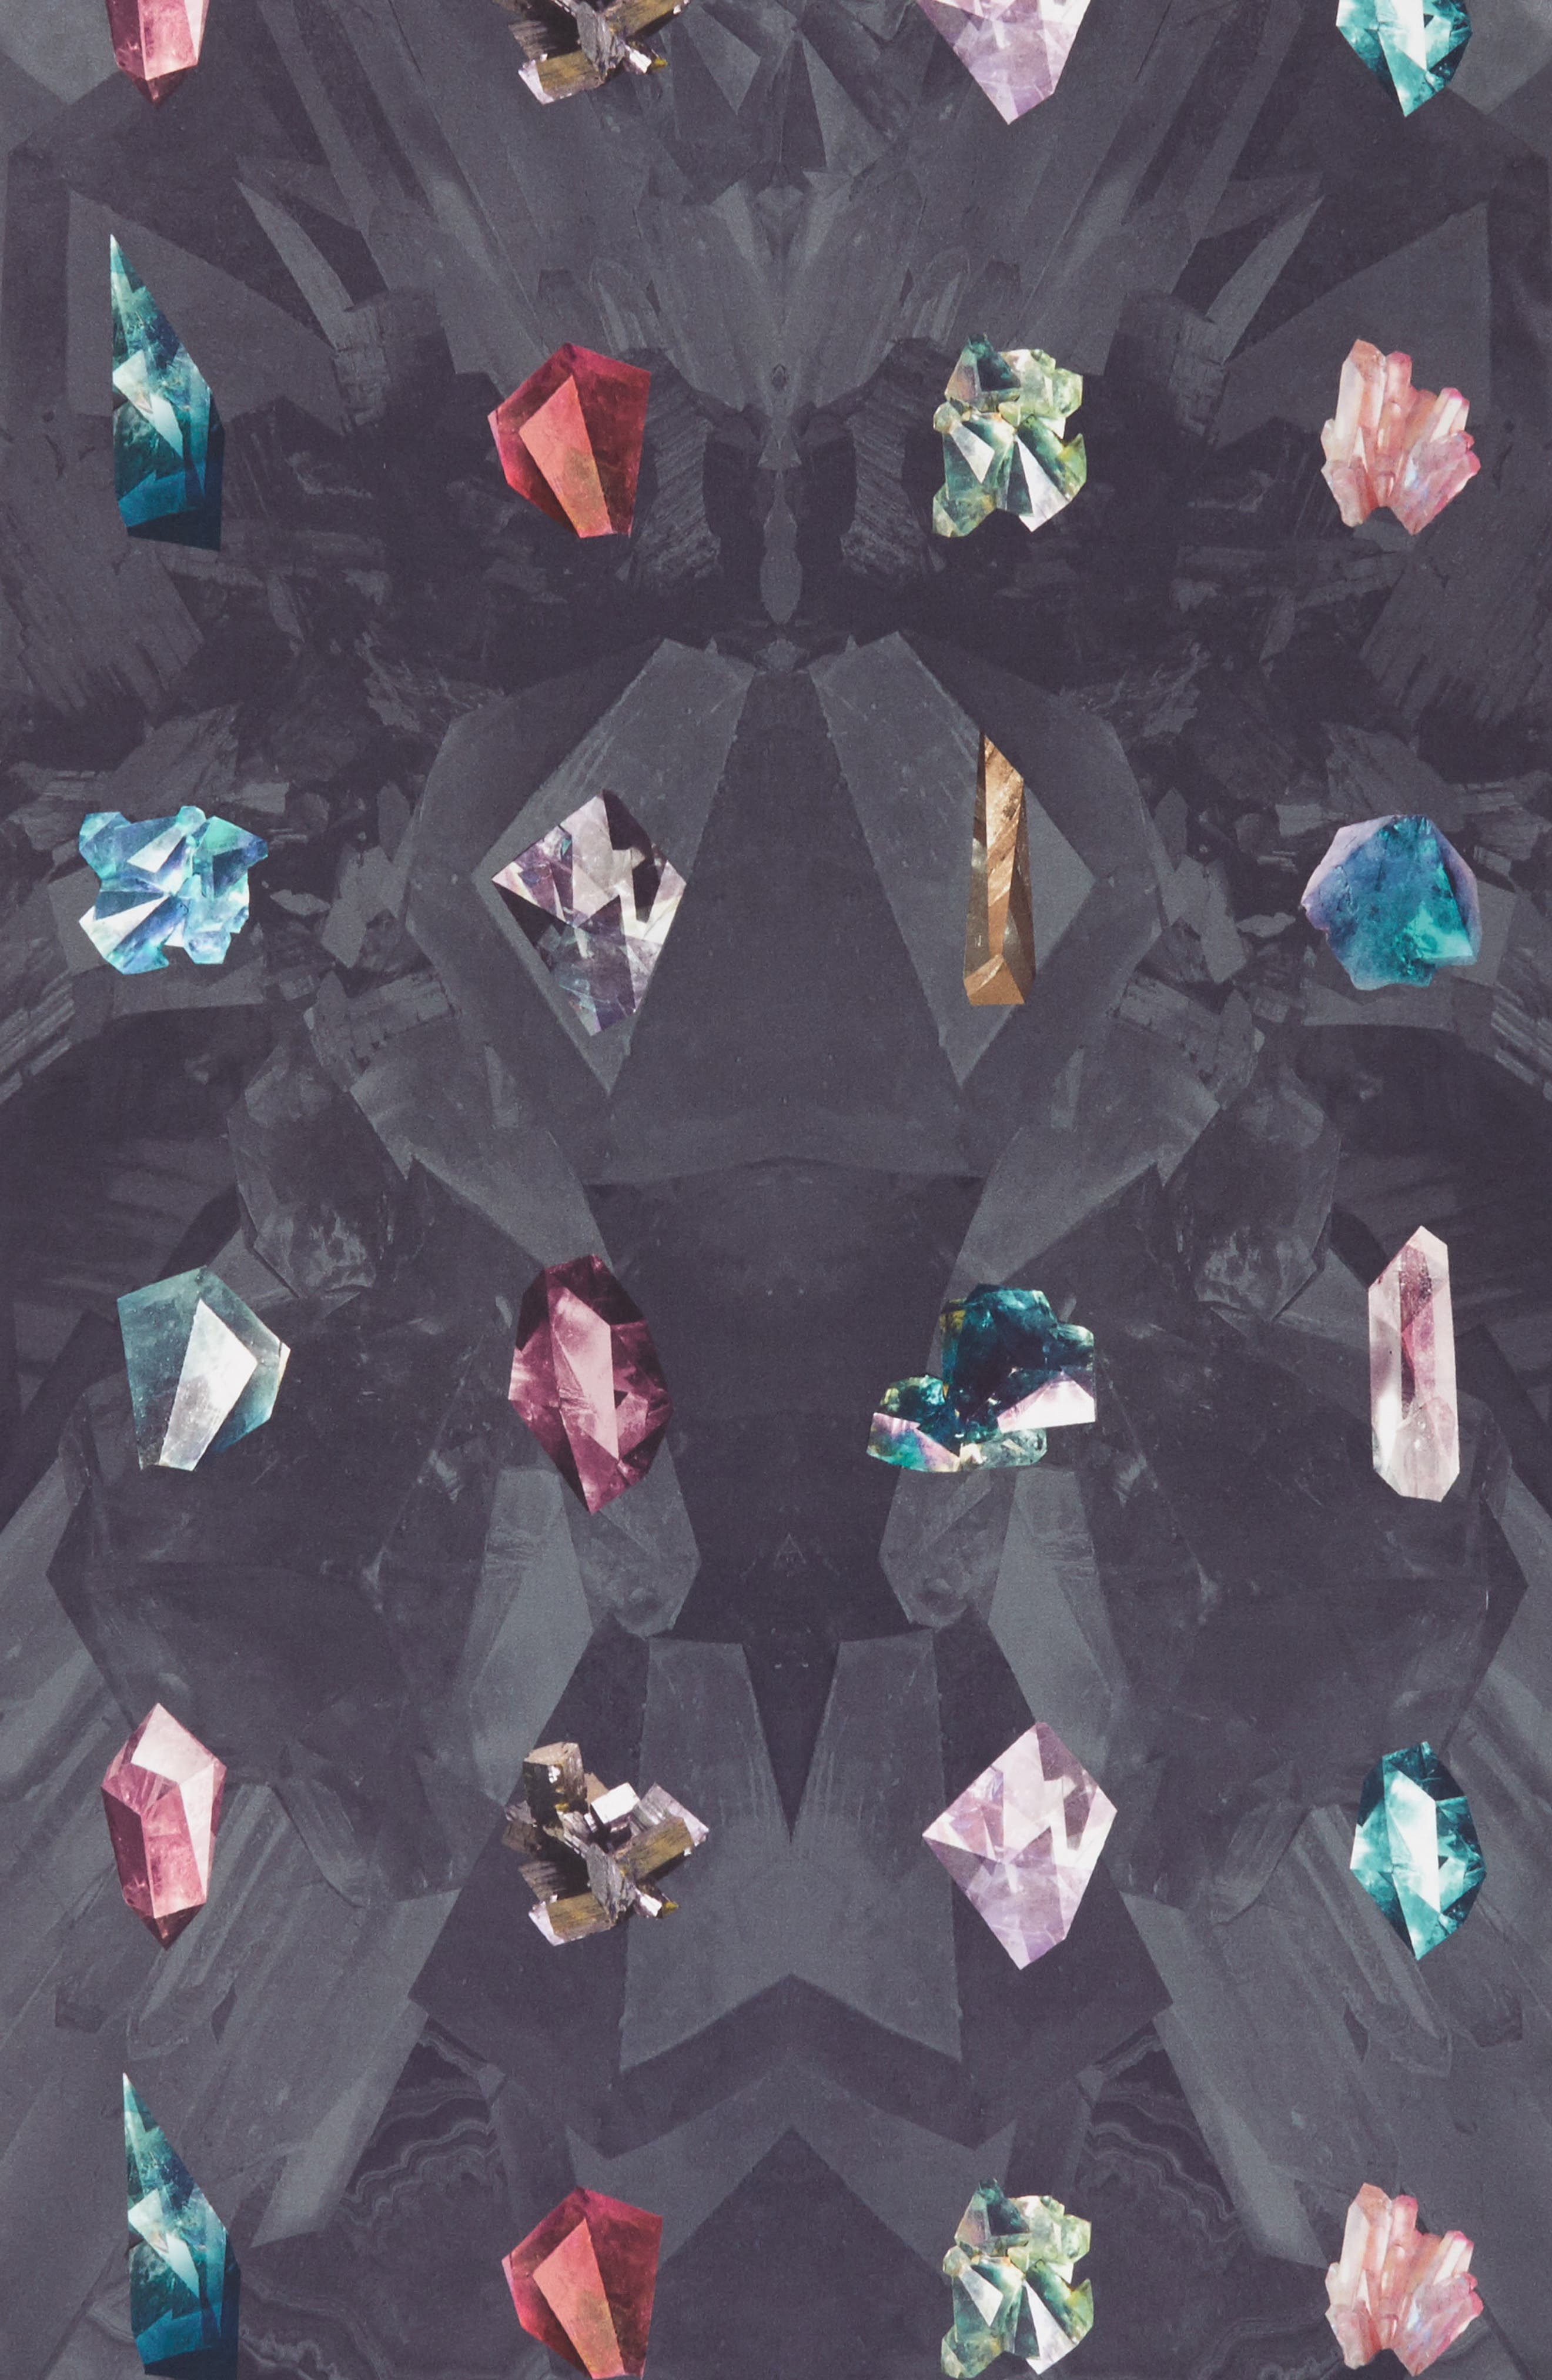 Mirrored Minerals Long Silk Scarf,                             Alternate thumbnail 4, color,                             021